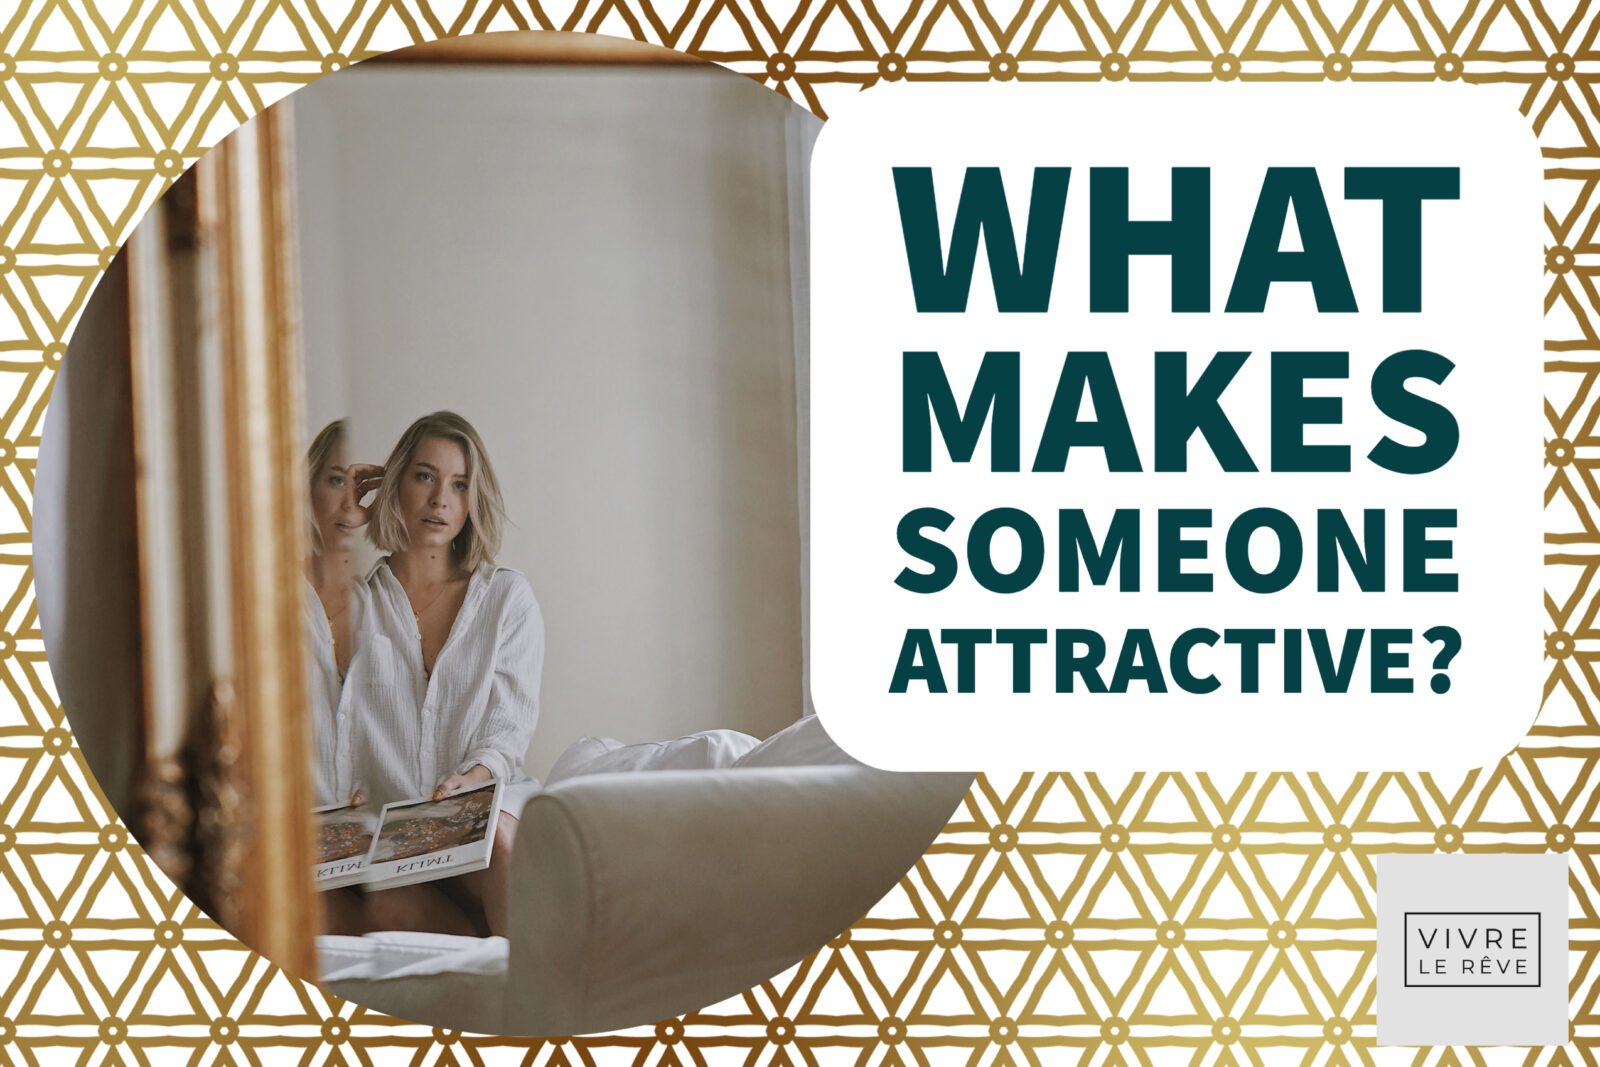 What Makes Someone Attractive?